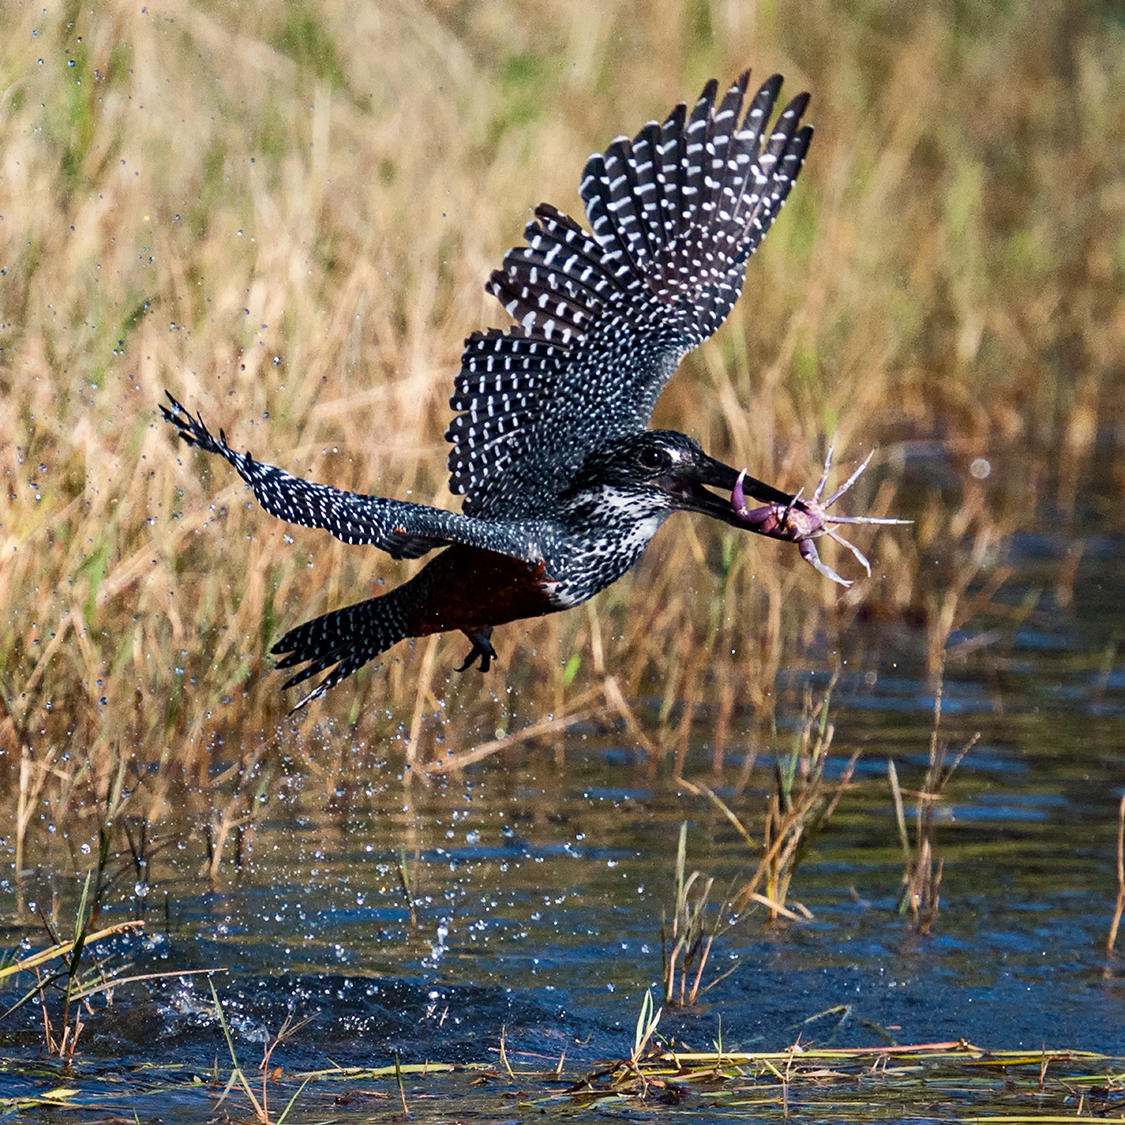 Giant Kingfisher with Crab